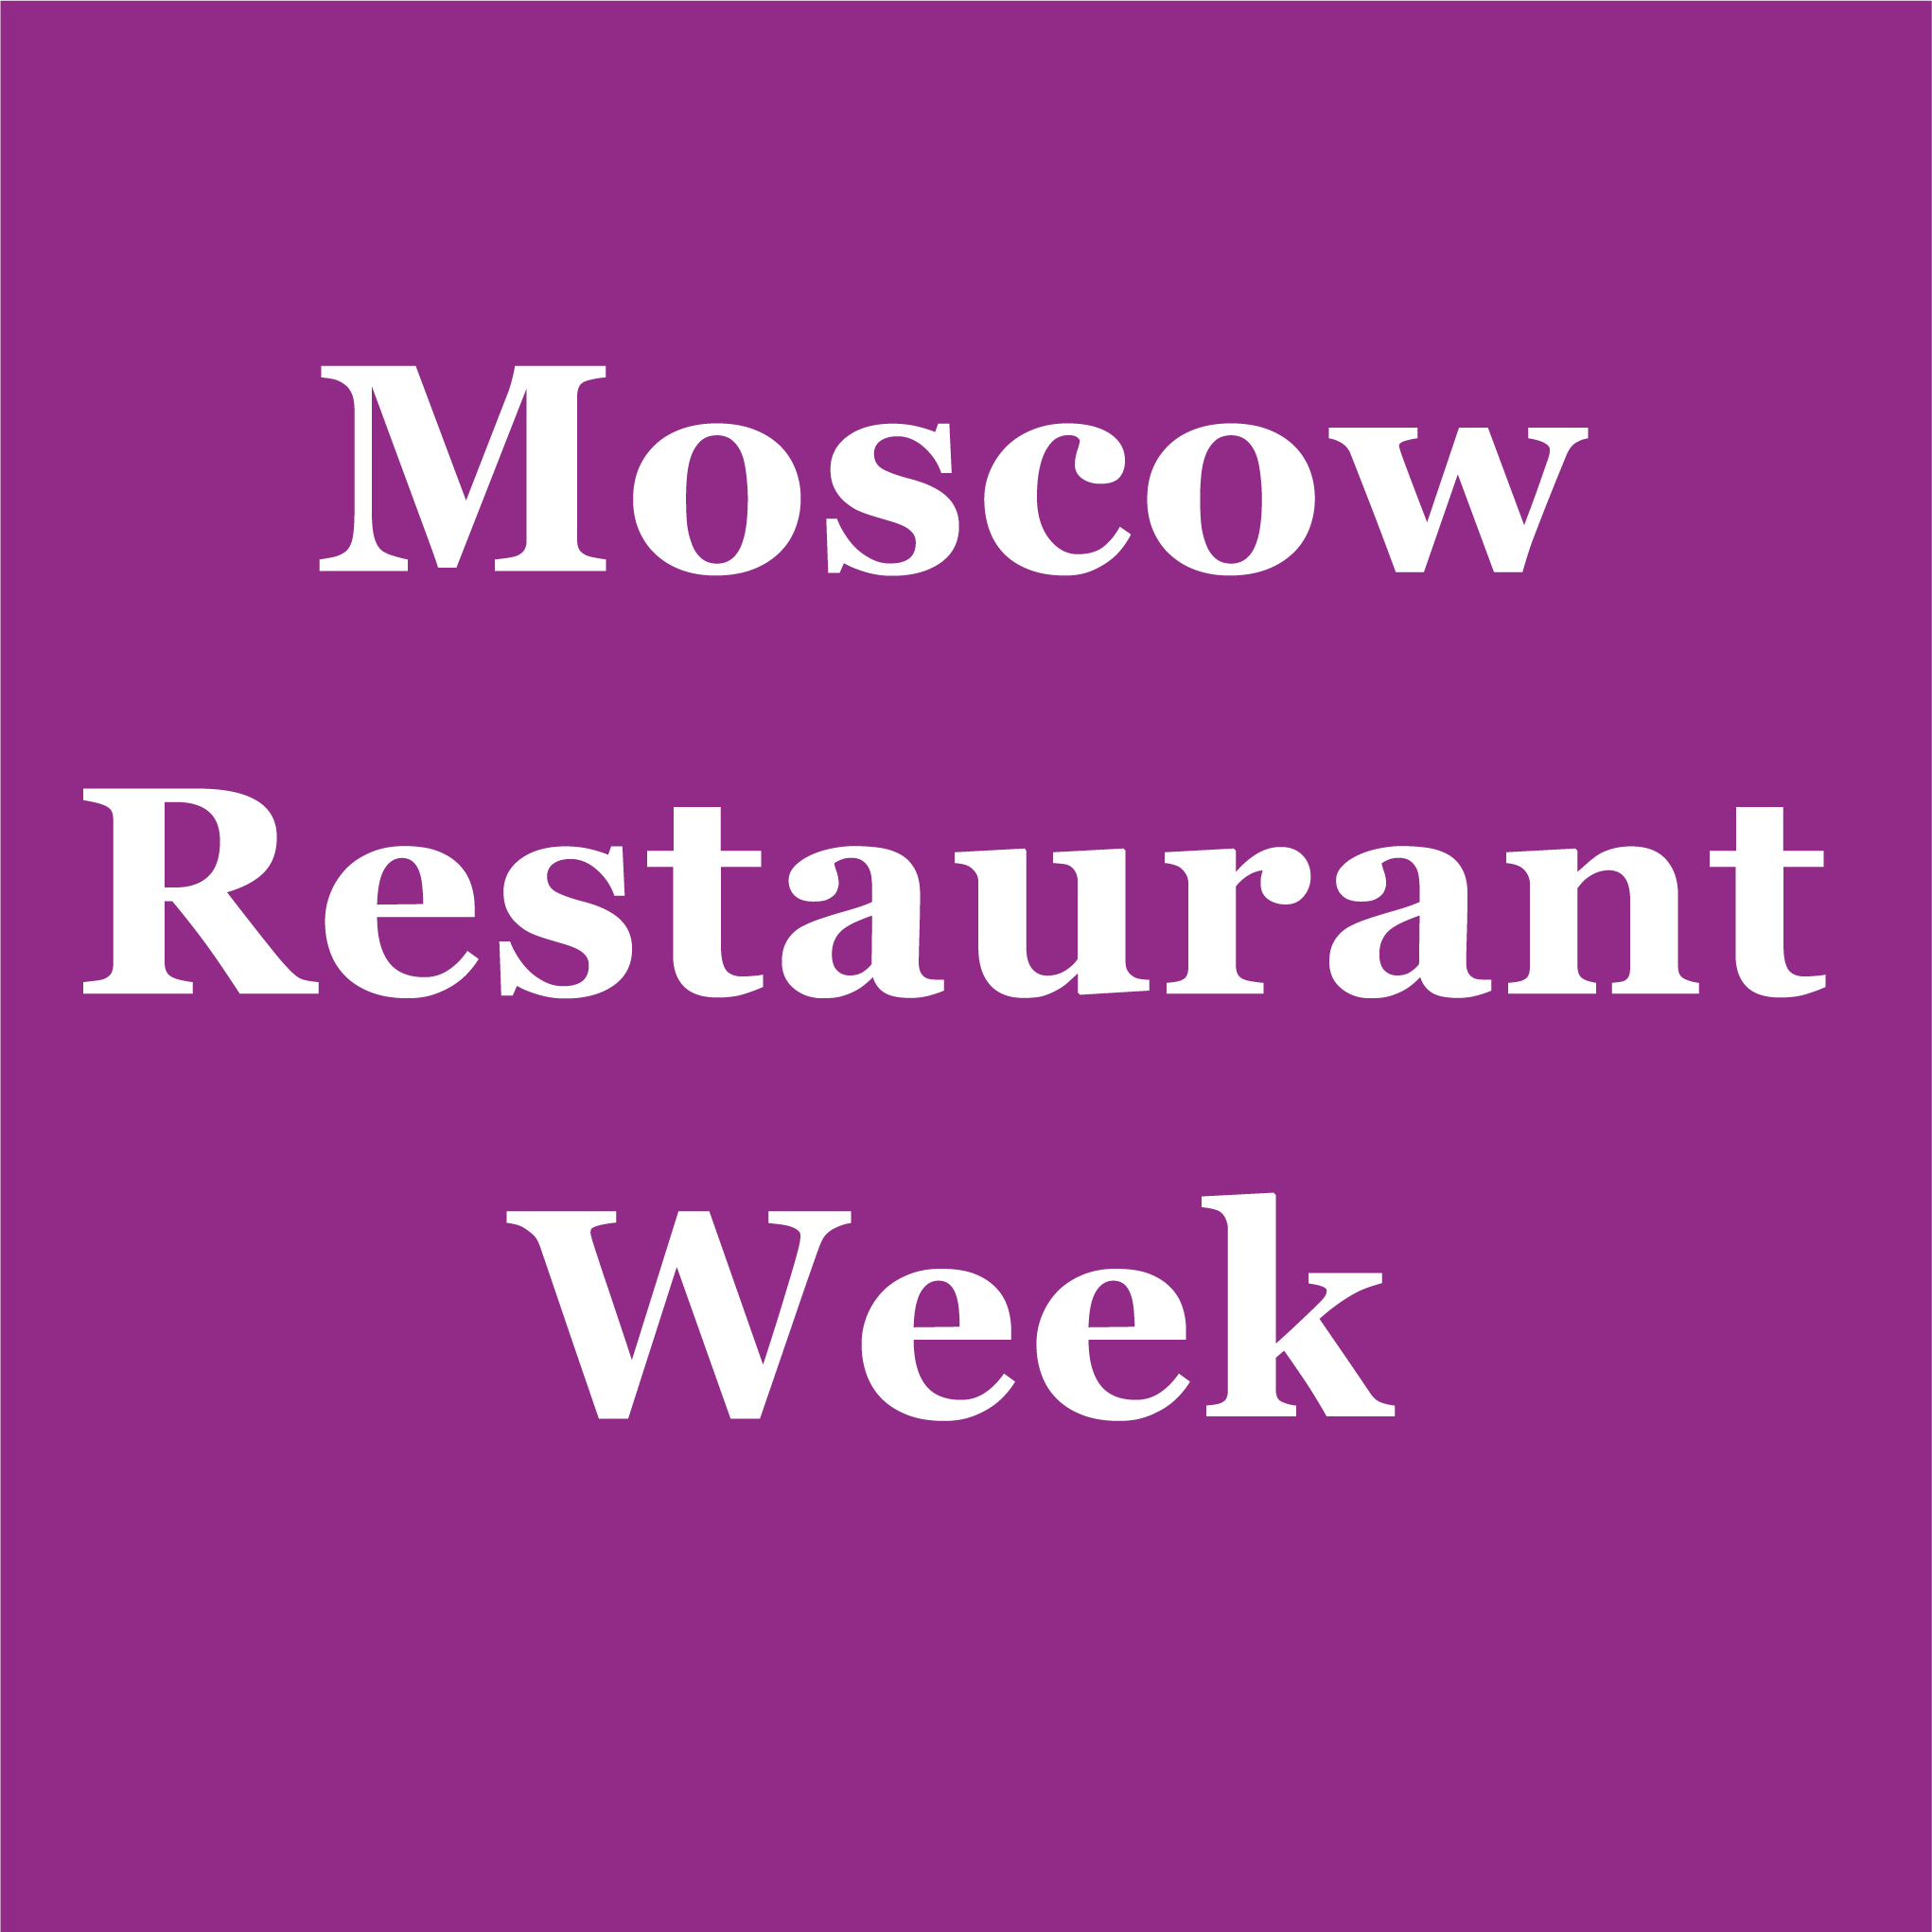 Moscow Restaurant Week 2018